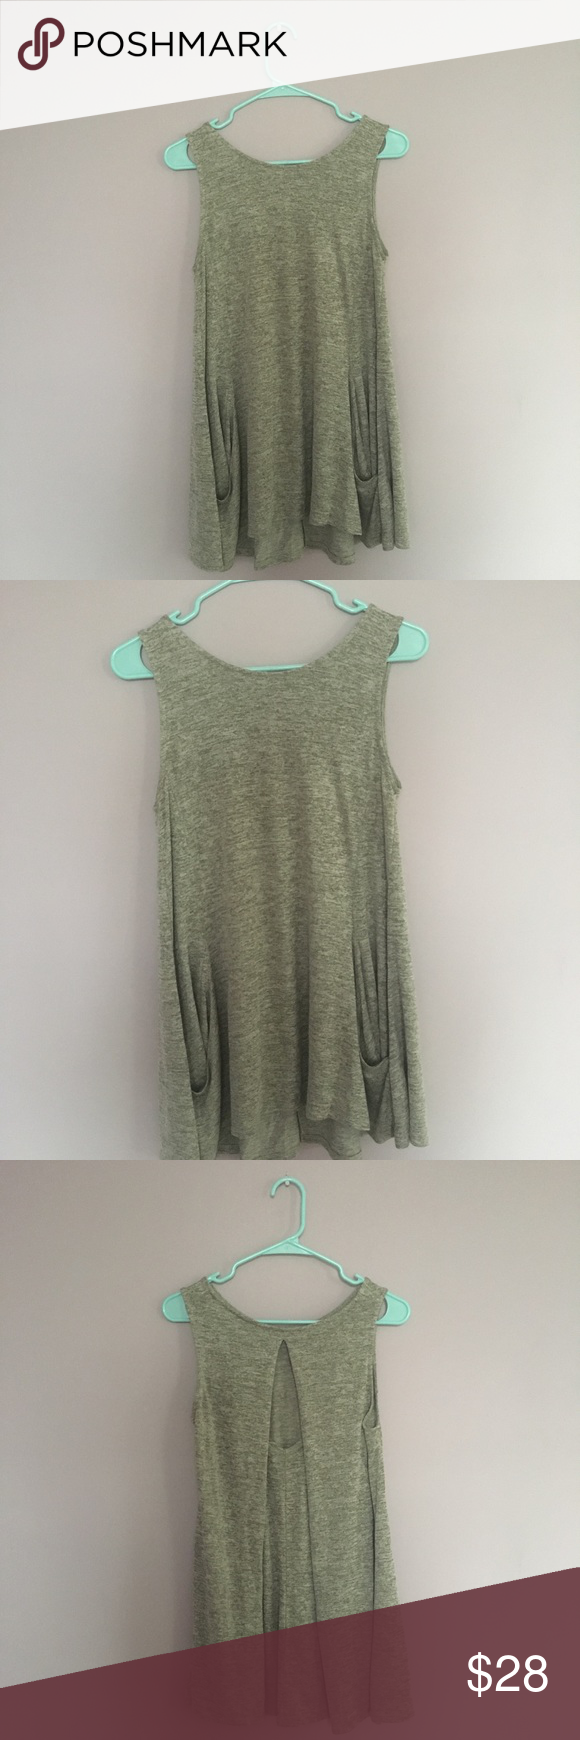 Maurices Green Open Back Top Maurices Green Open Back Top | Two-front pockets | Very soft and flowy fabric | In good condition- size medium | Maurices Tops